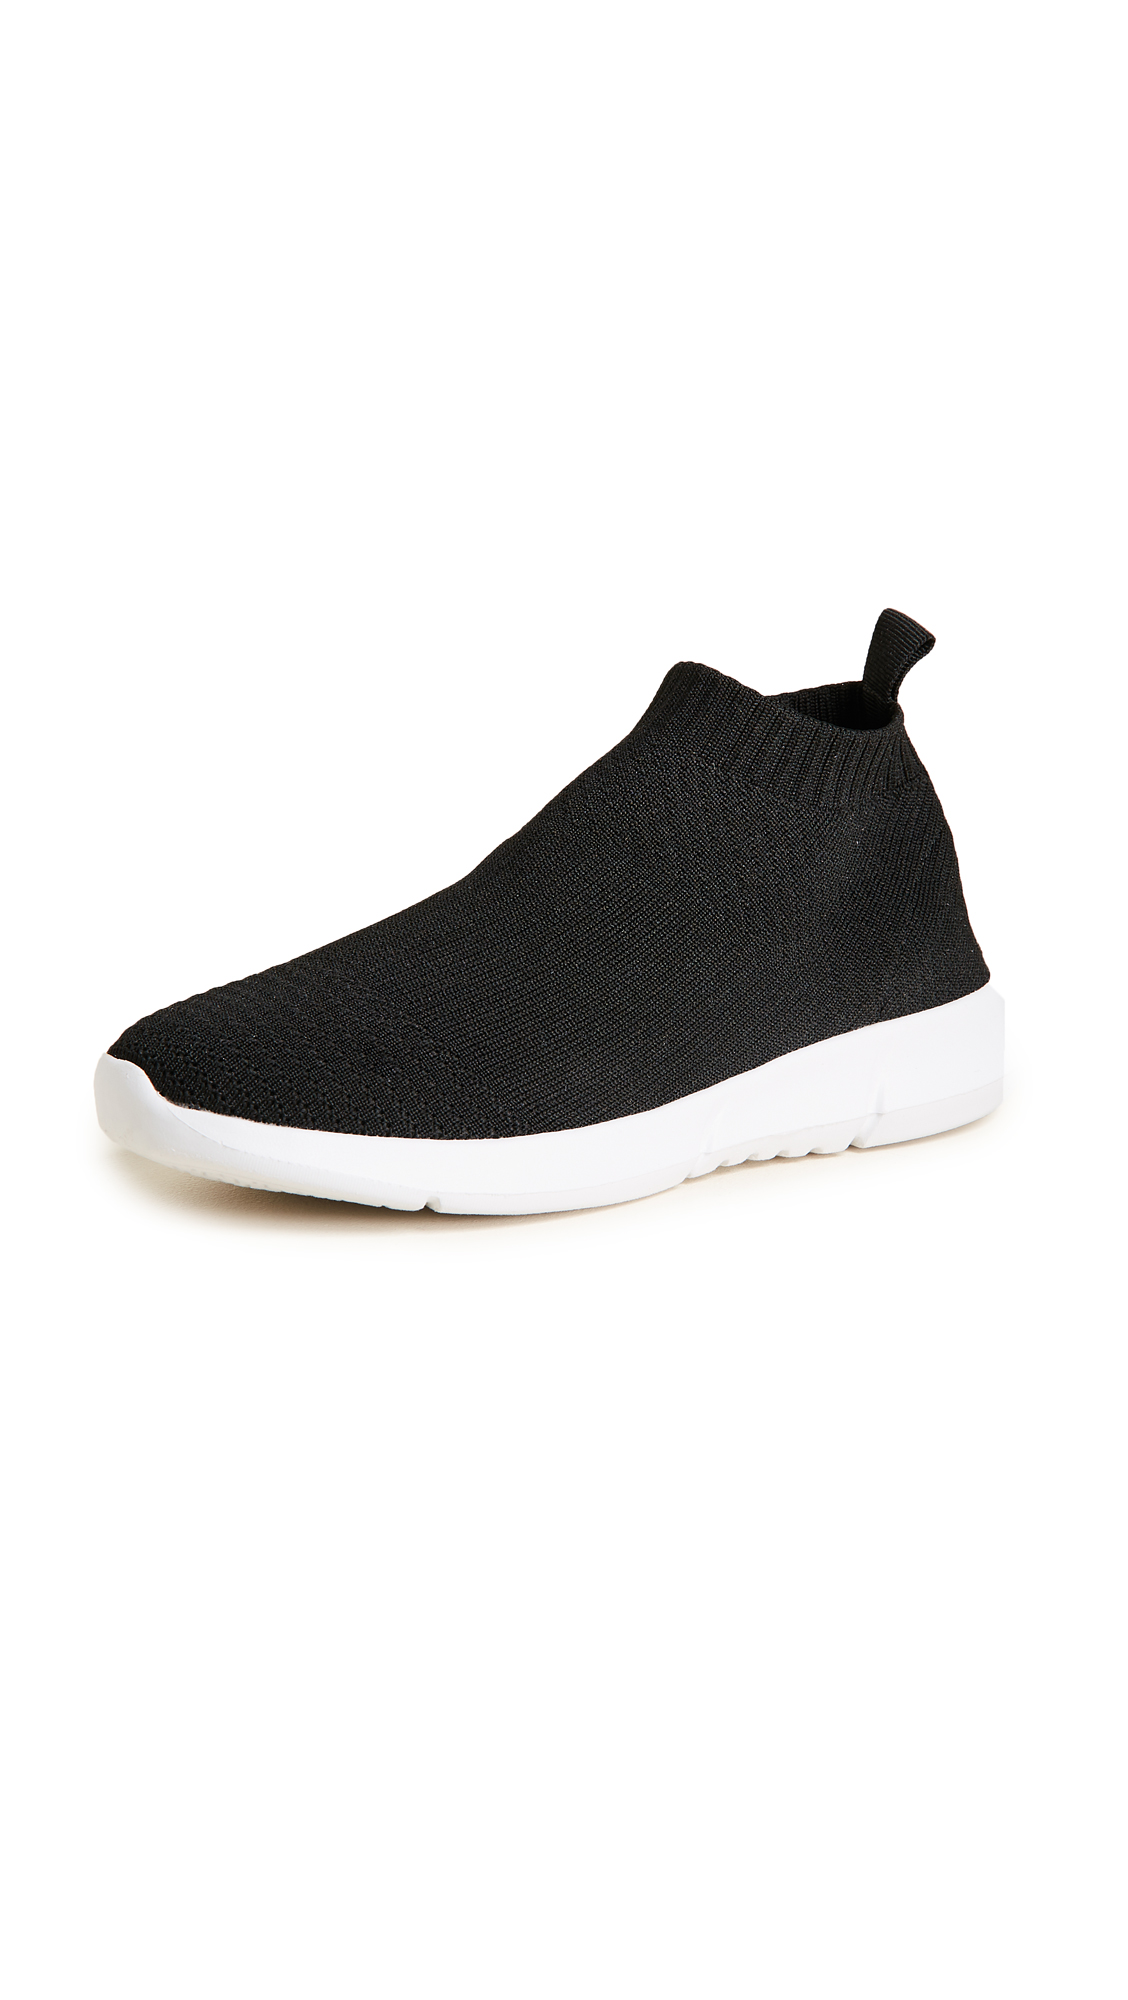 Steven Fabs Knit Jogger Sneakers - Black